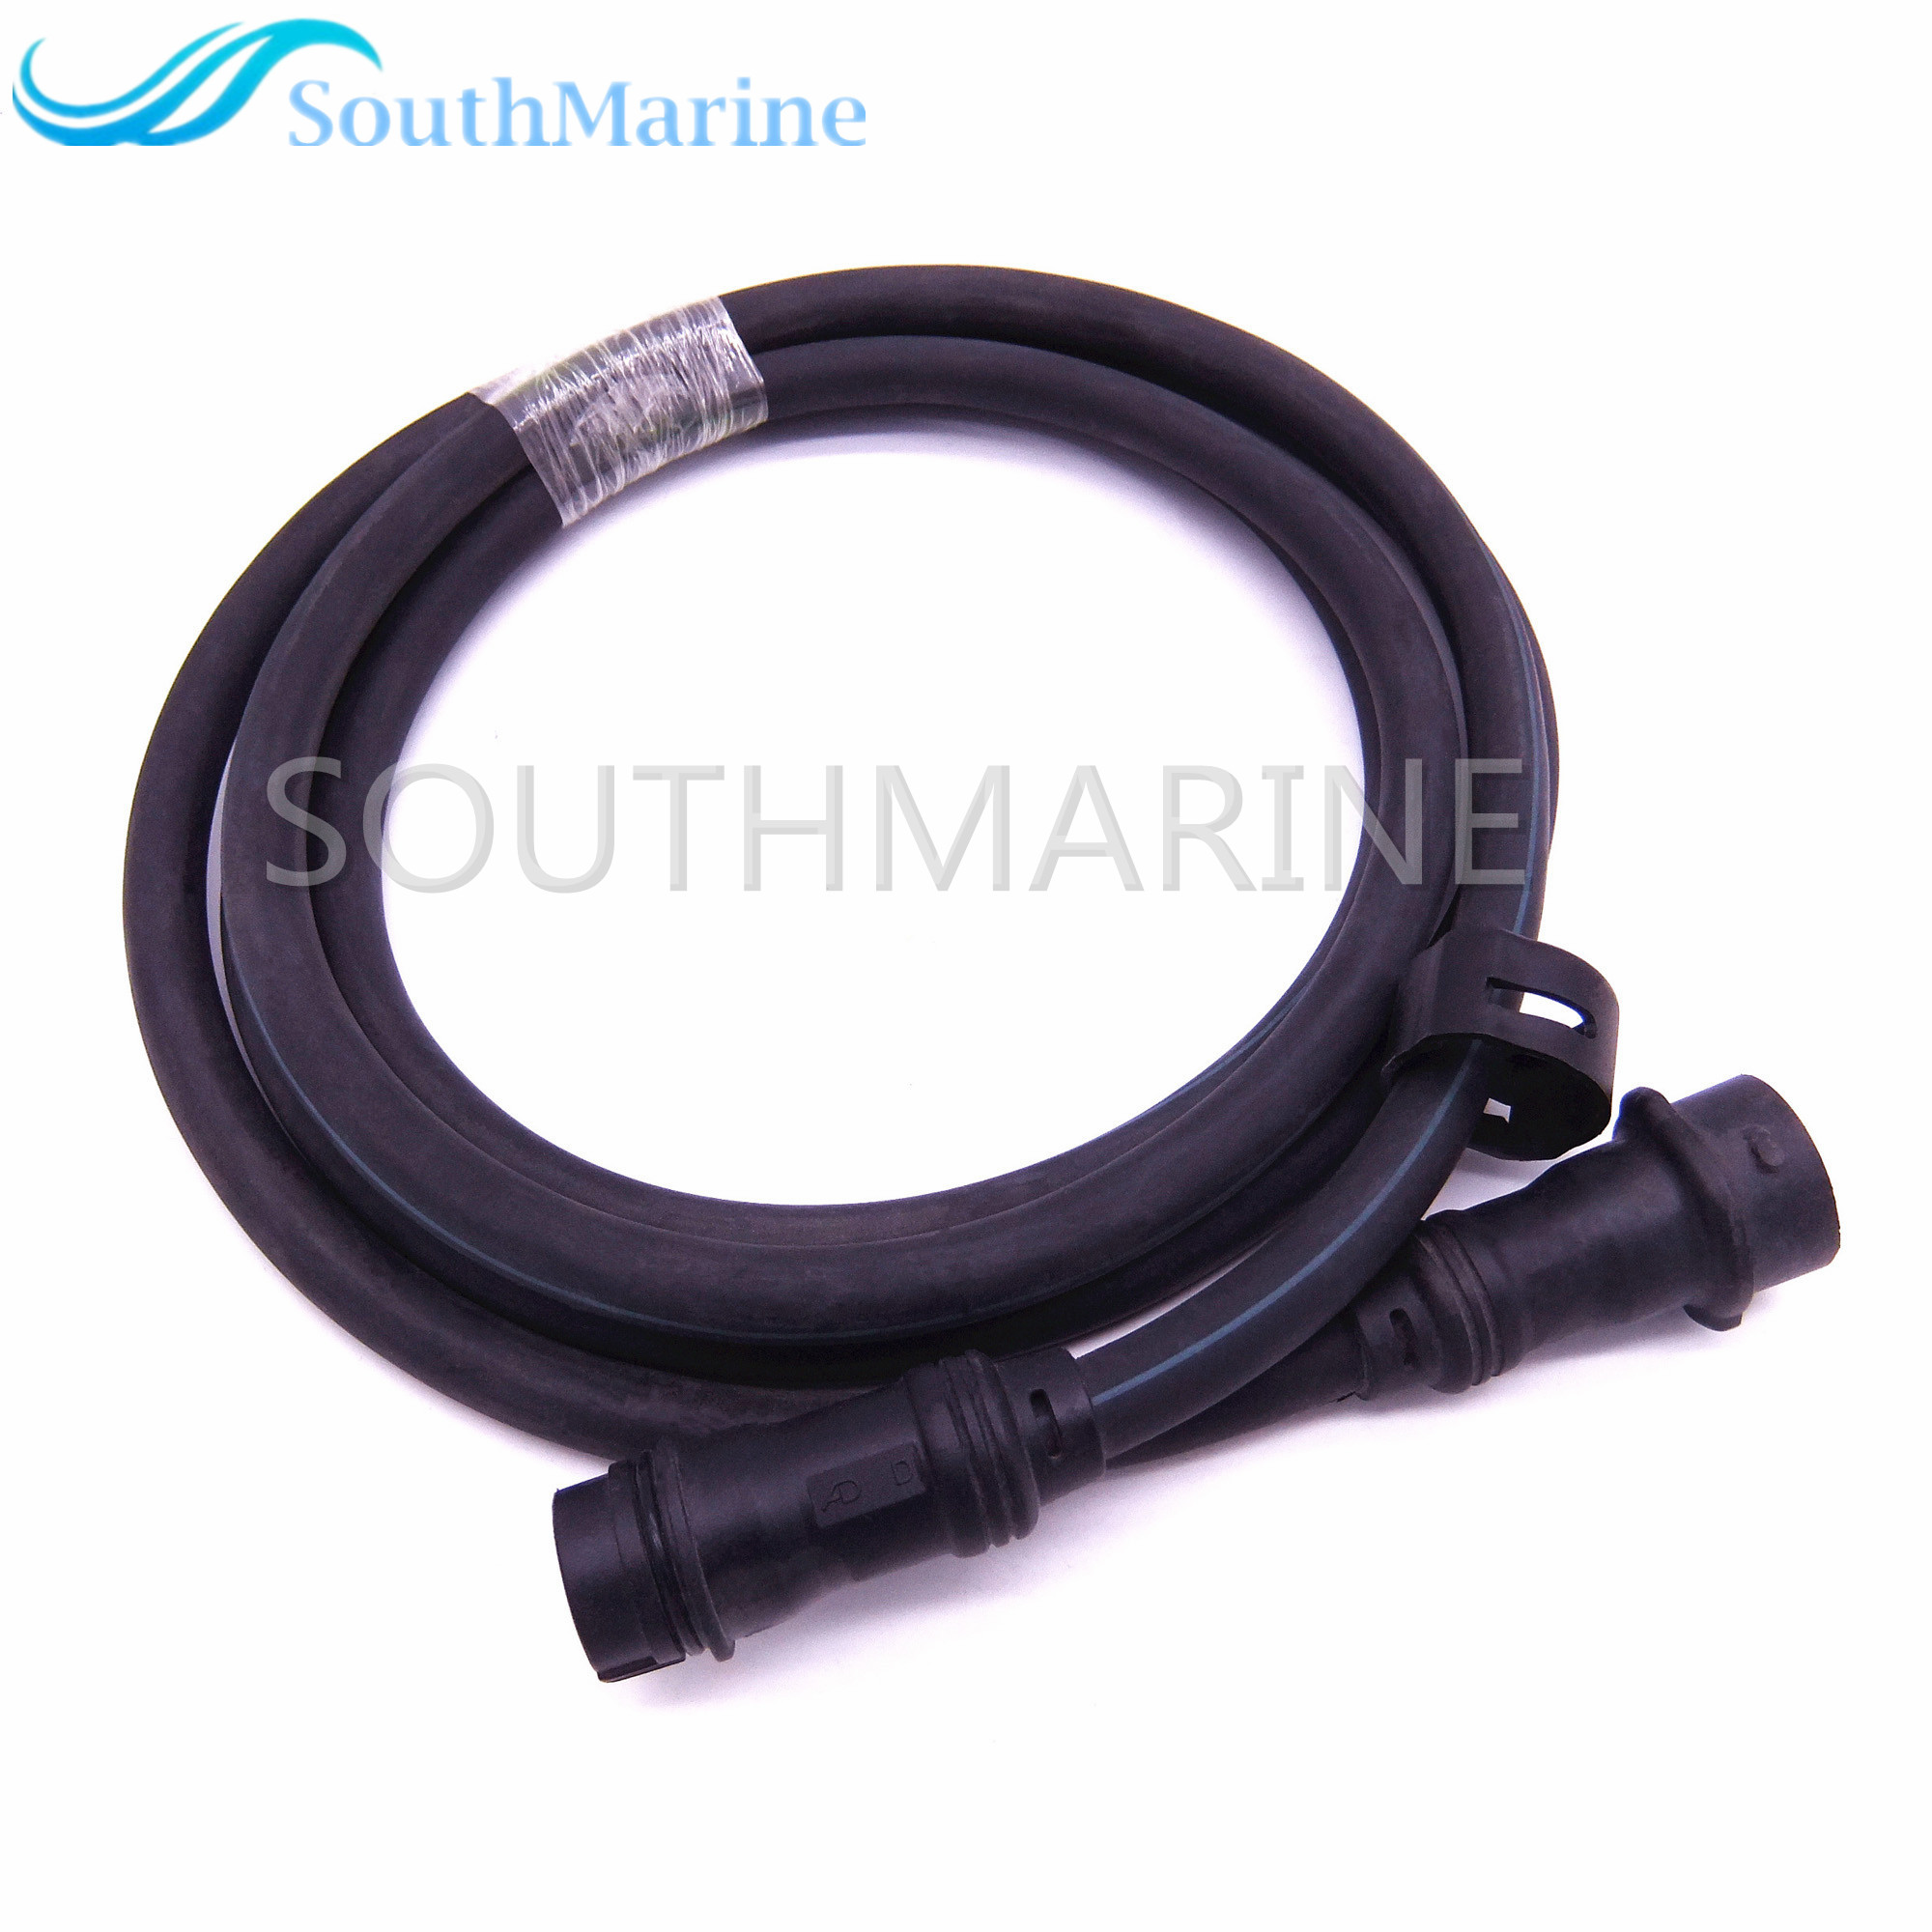 688 8258a 10 00 Pin Main Wire Harness For Yamaha Outboard 2001 Vz150tlrz Remote Control Assy Vz175tlrz Vz200tlrz Z150tlrz Assembly 1